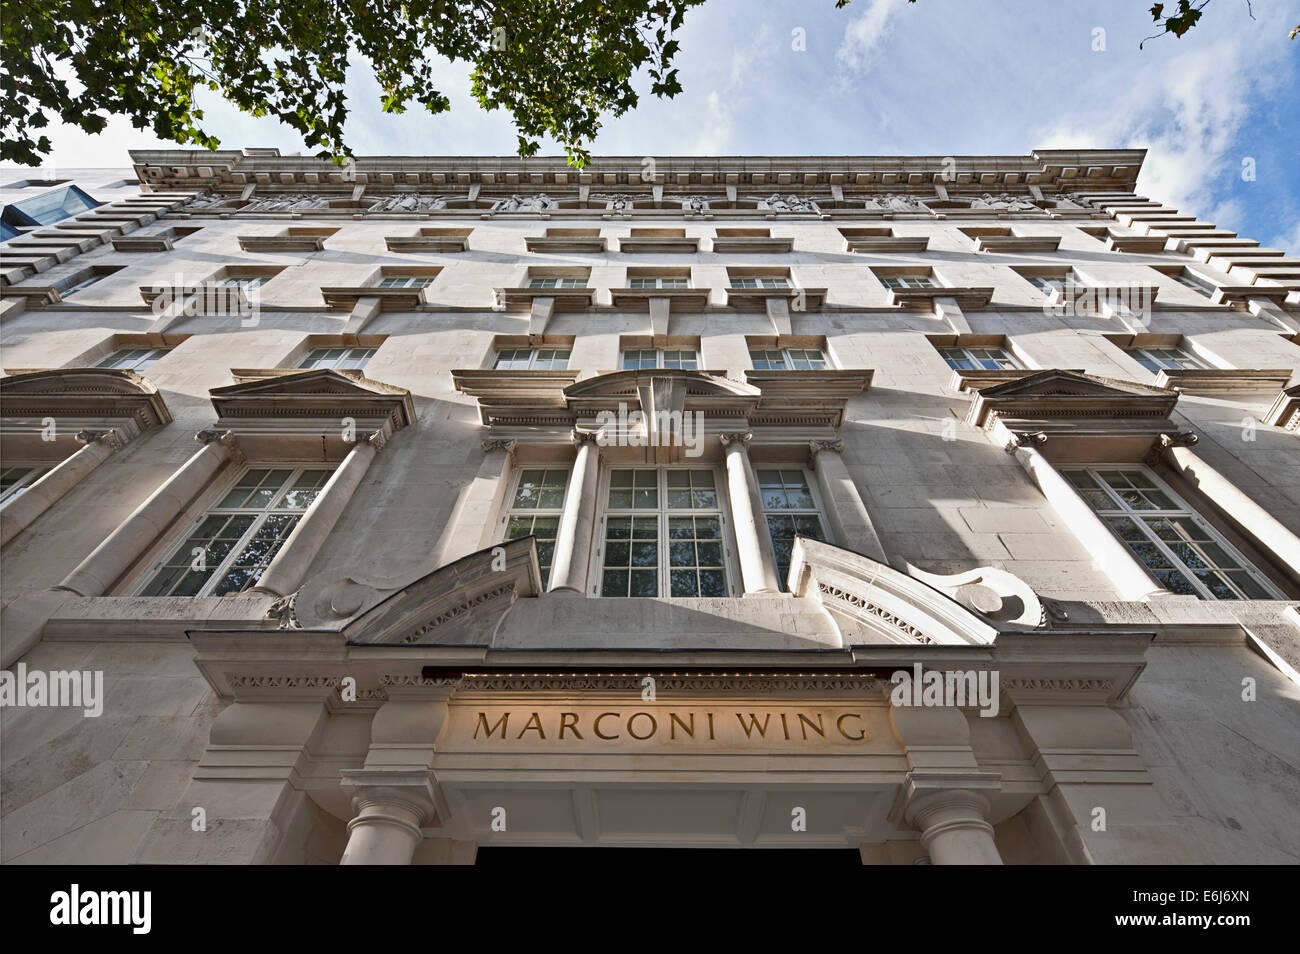 Marconi House - a residential development in the Strand, London - Stock Image